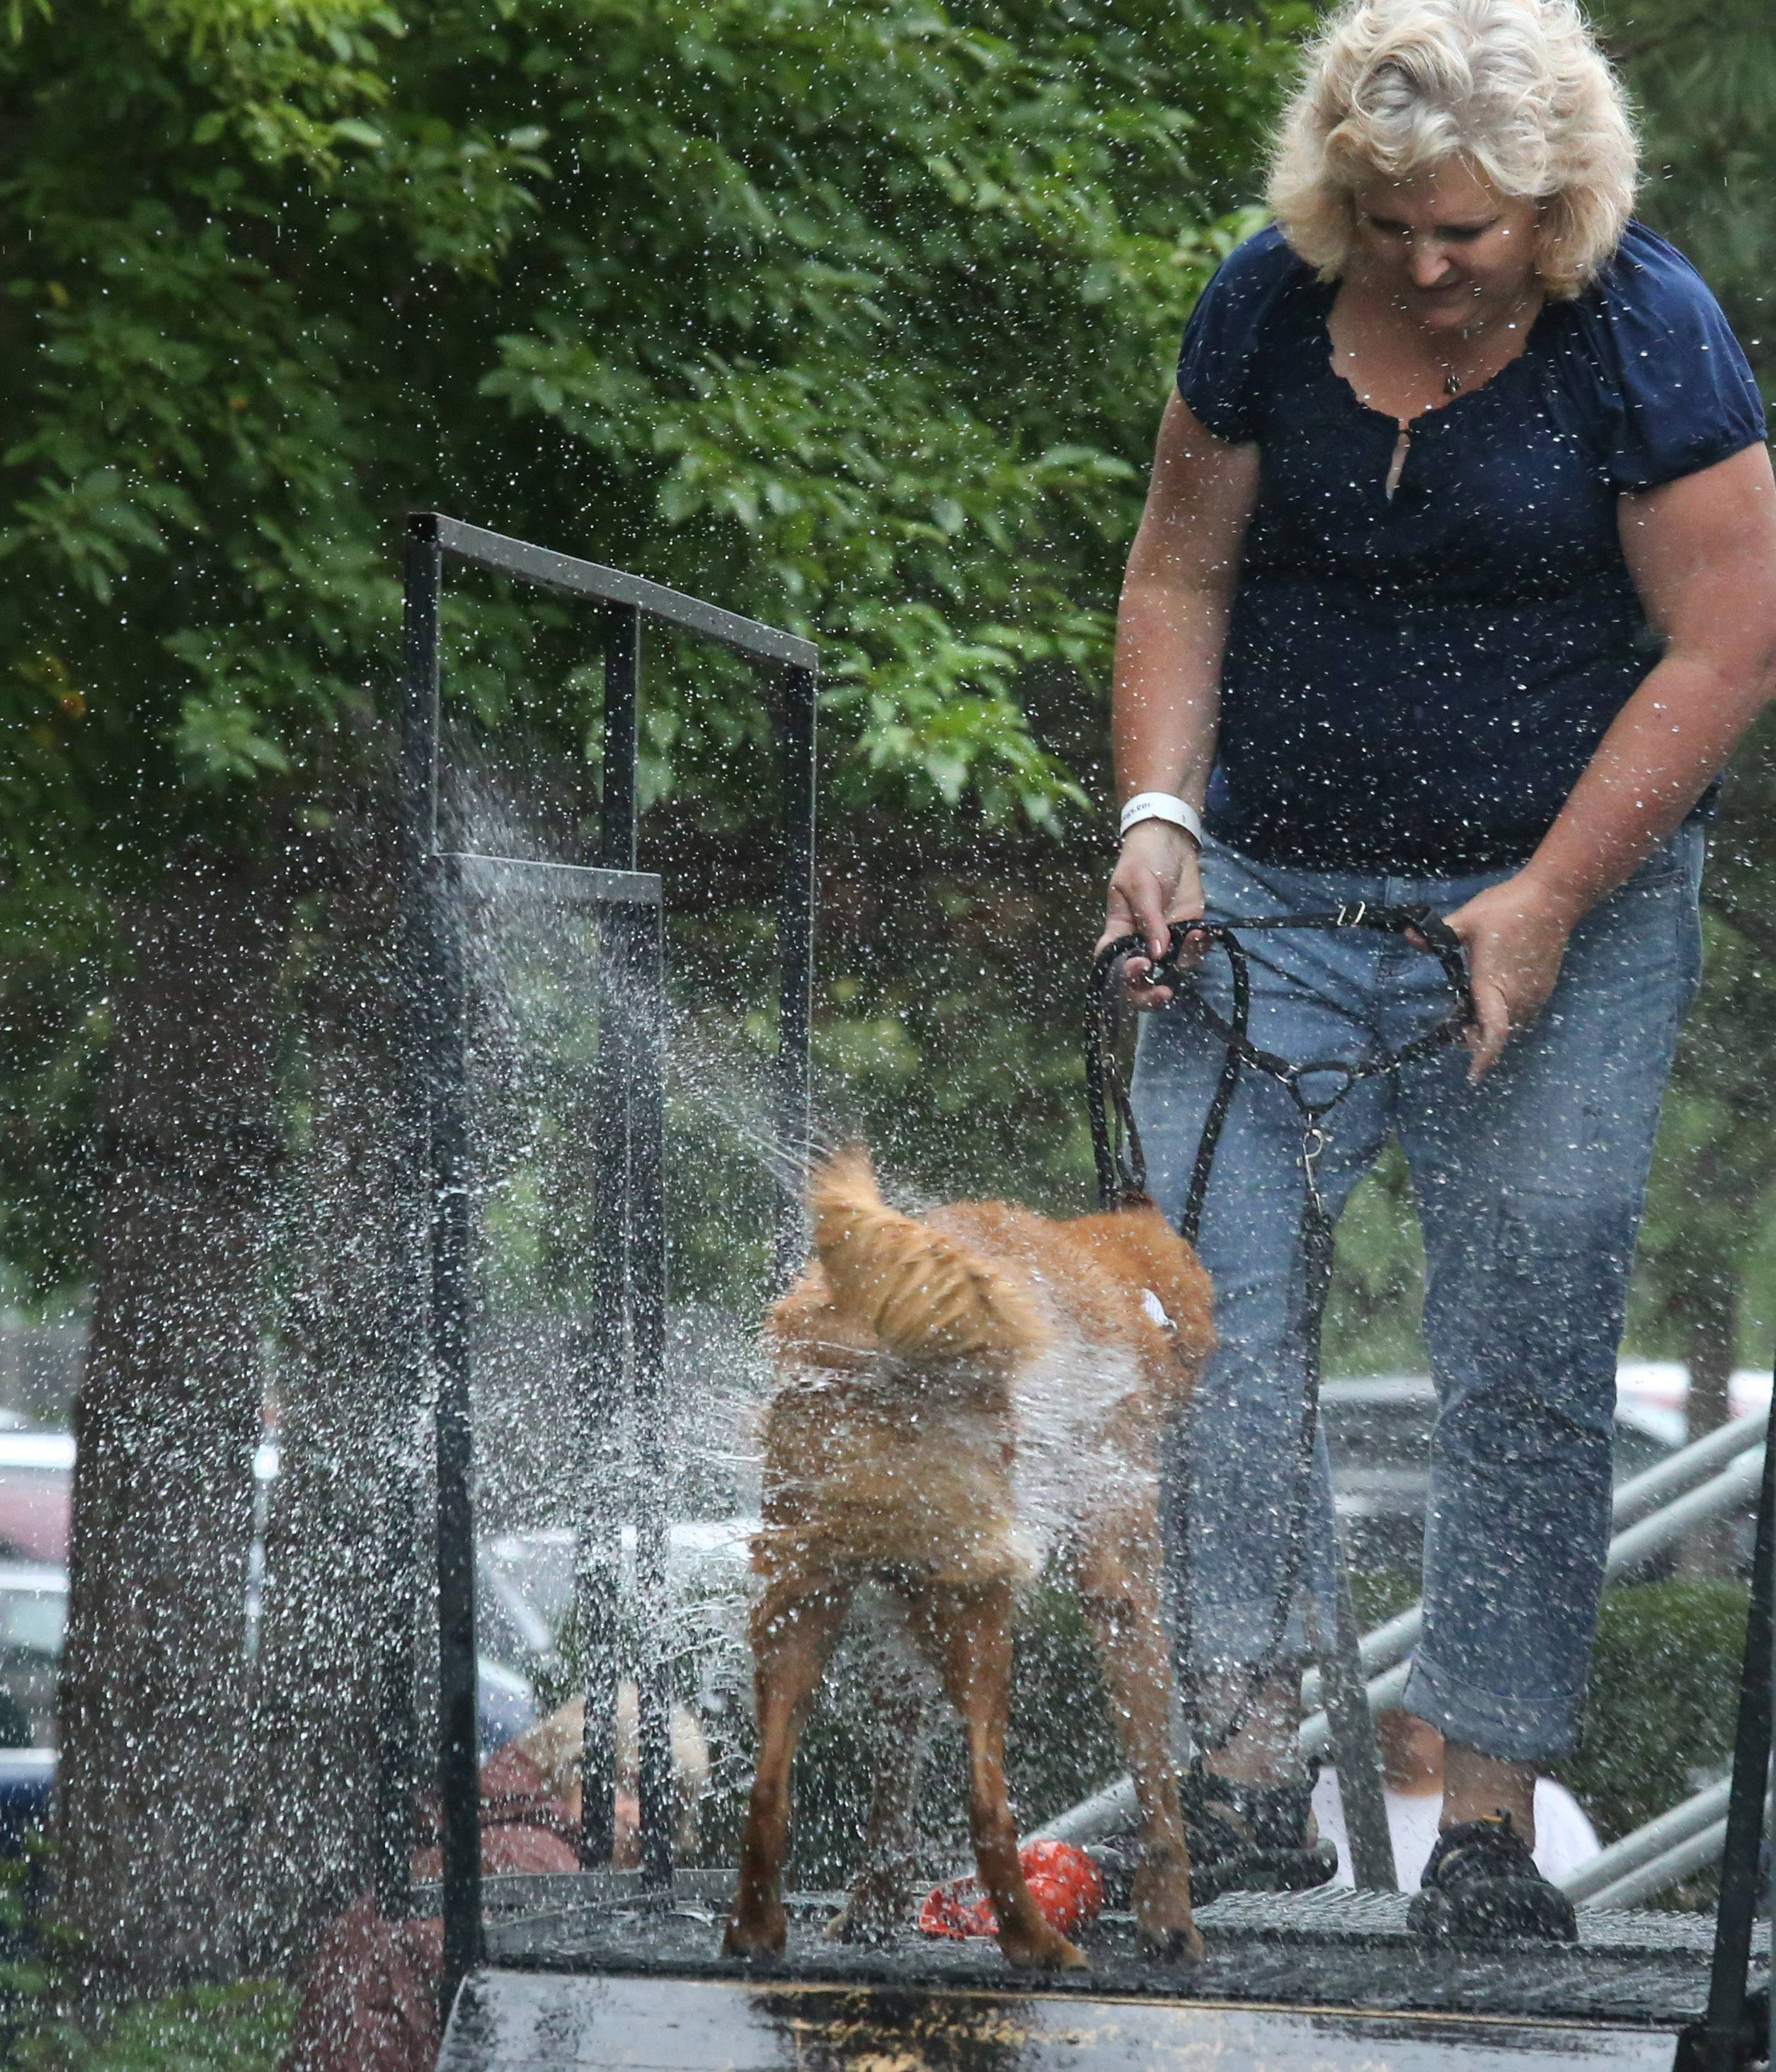 Elk Grove Village resident Roberta Mecklenburg's 7-year-old rescue dog, Halle, shakes water off after jumping into a 30,000-gallon pool Friday at the DockDogs Big Air Dog Jumping event in Libertyville